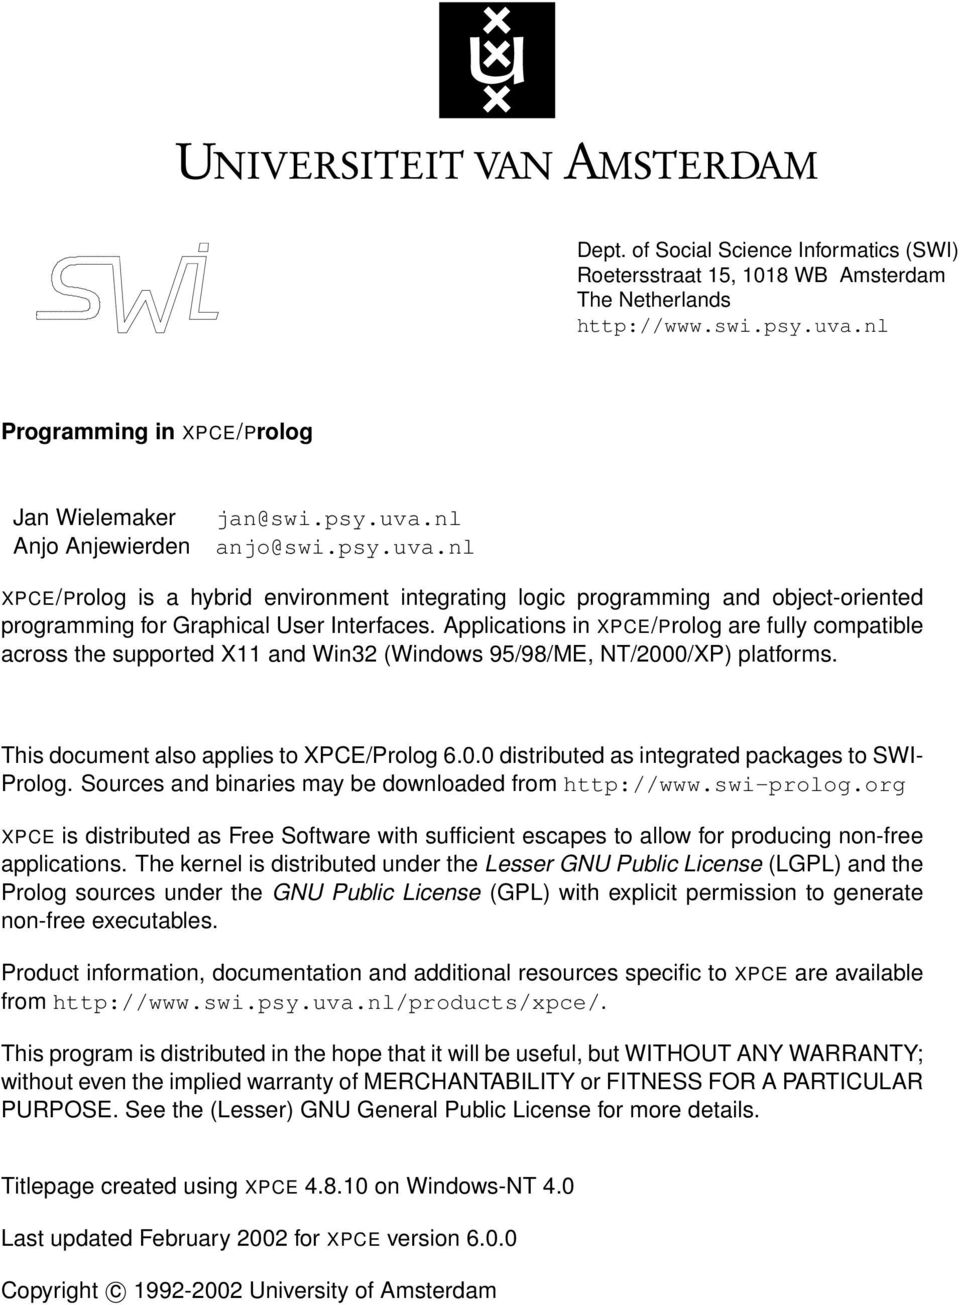 Applications in XPCE/Prolog are fully compatible across the supported X11 and Win32 (Windows 95/98/ME, NT/2000/XP) platforms. This document also applies to XPCE/Prolog 6.0.0 distributed as integrated packages to SWI- Prolog.